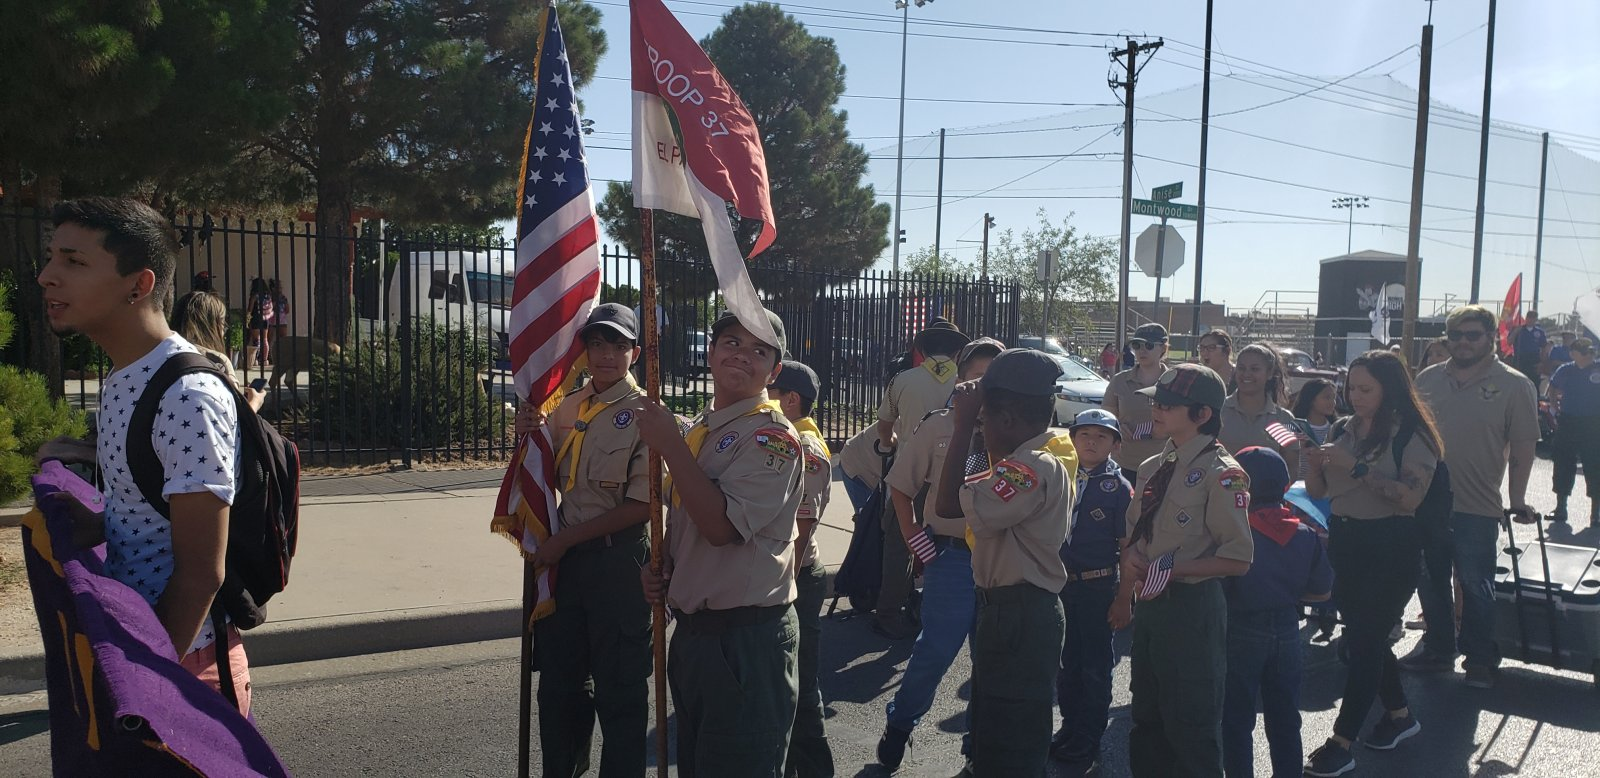 Troop_37_at_the_4th_of_July_Parade.jpg